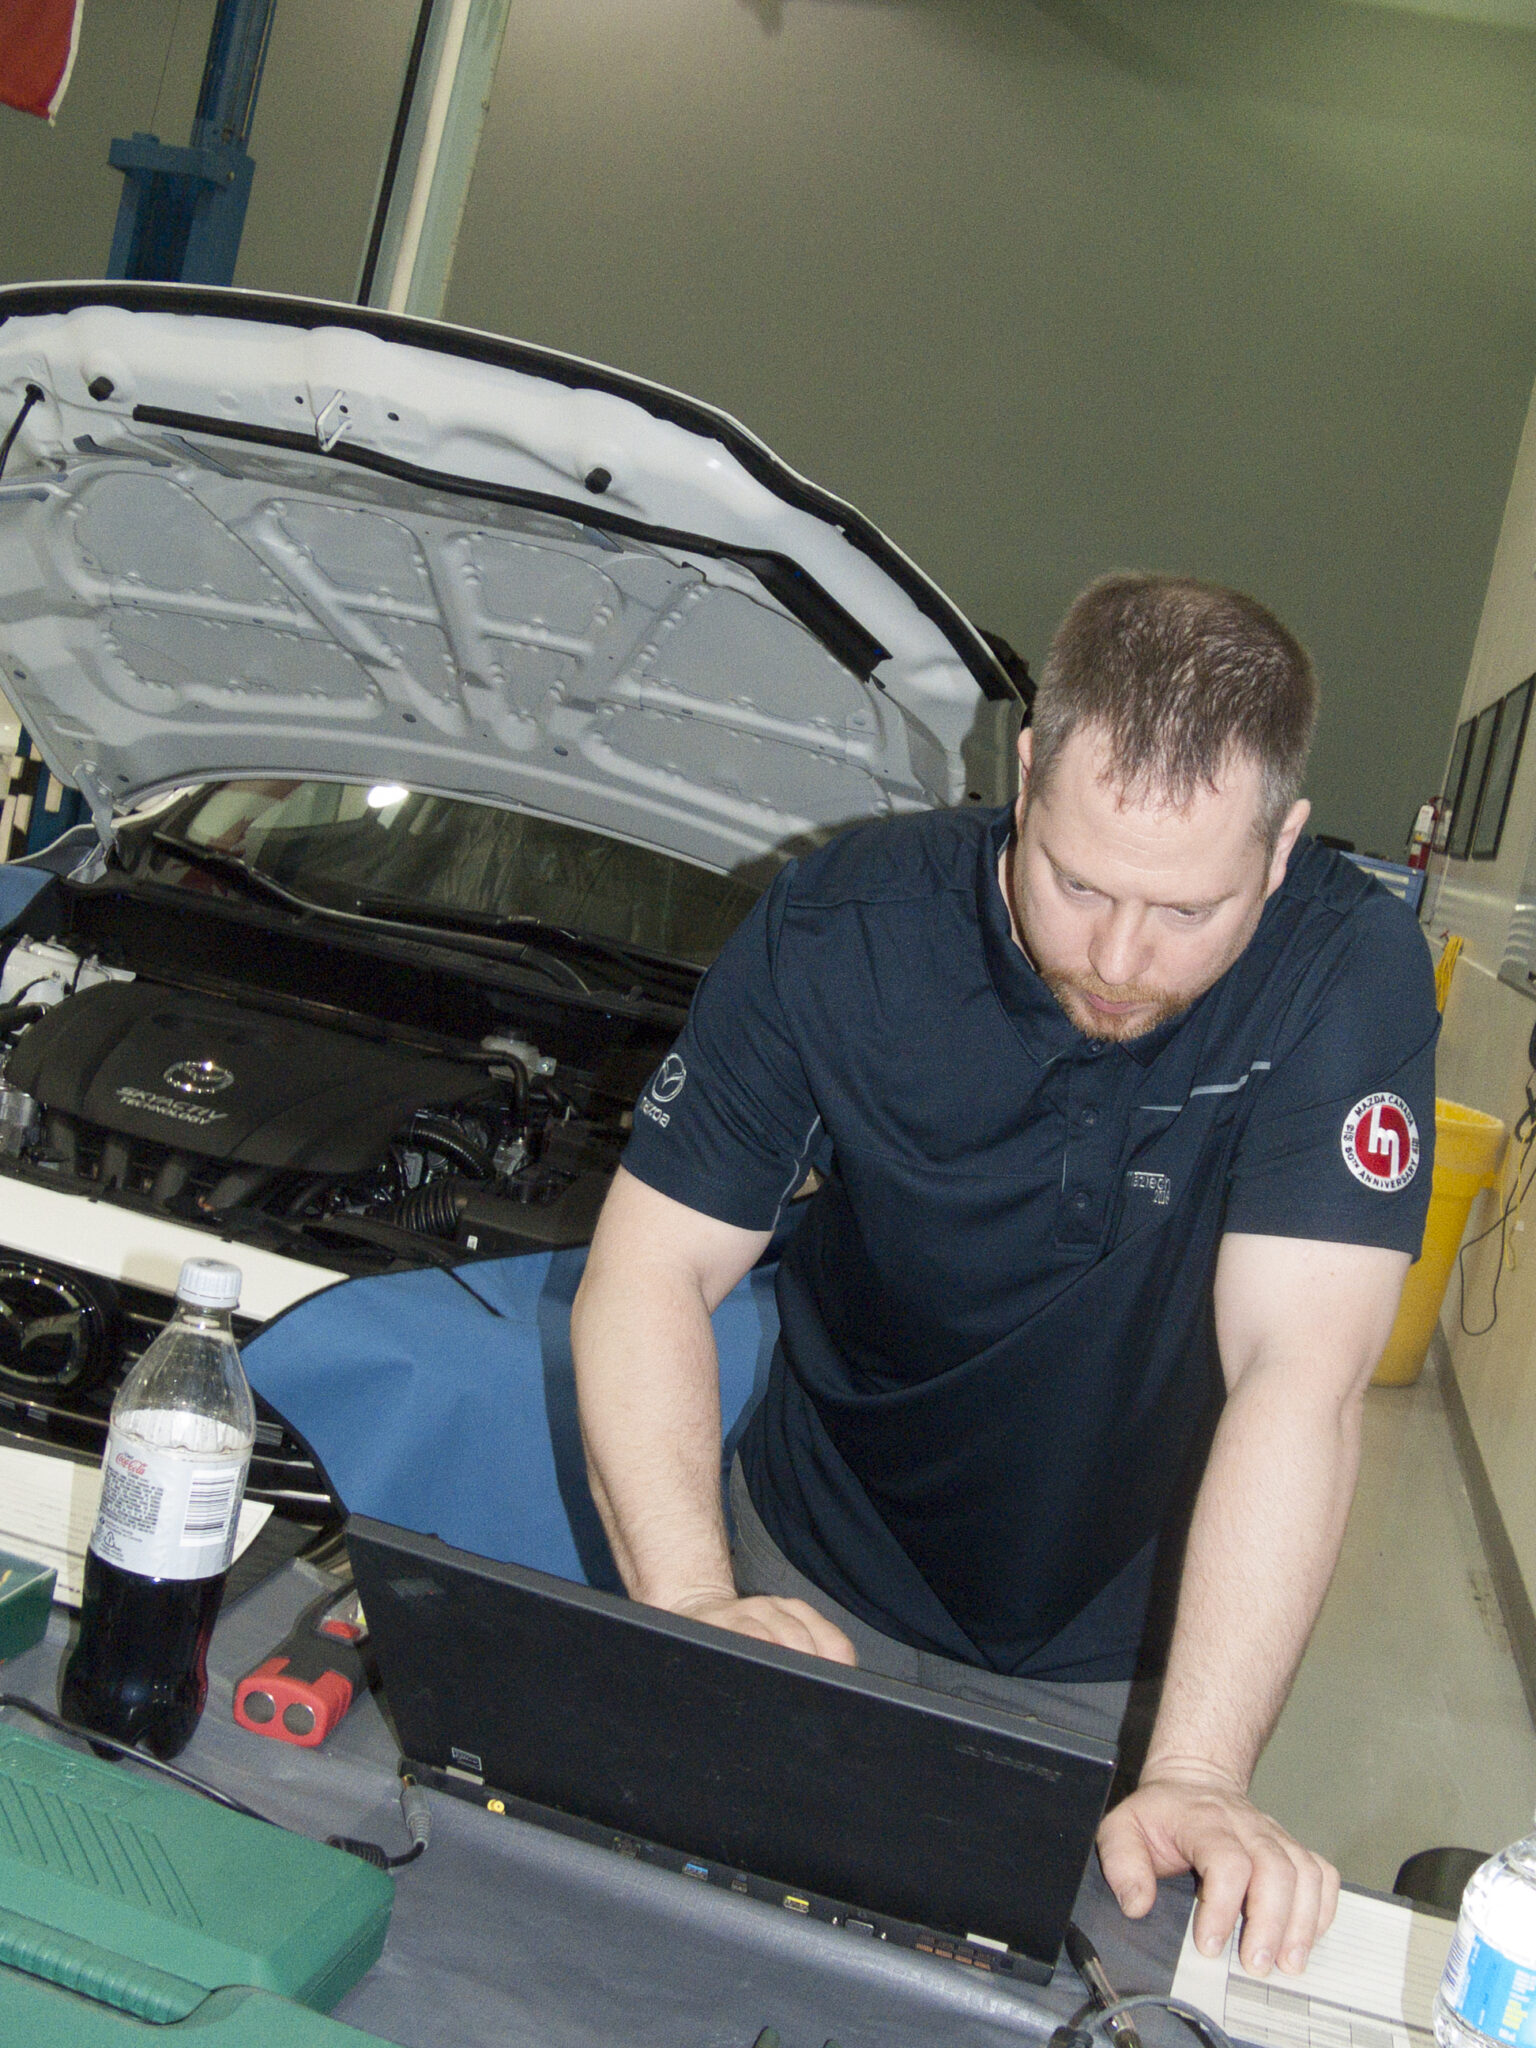 Cristopher Puckering diagnoses a vehicle at the 2018 Canadian MazTech Service Skills Competition in Toronto.